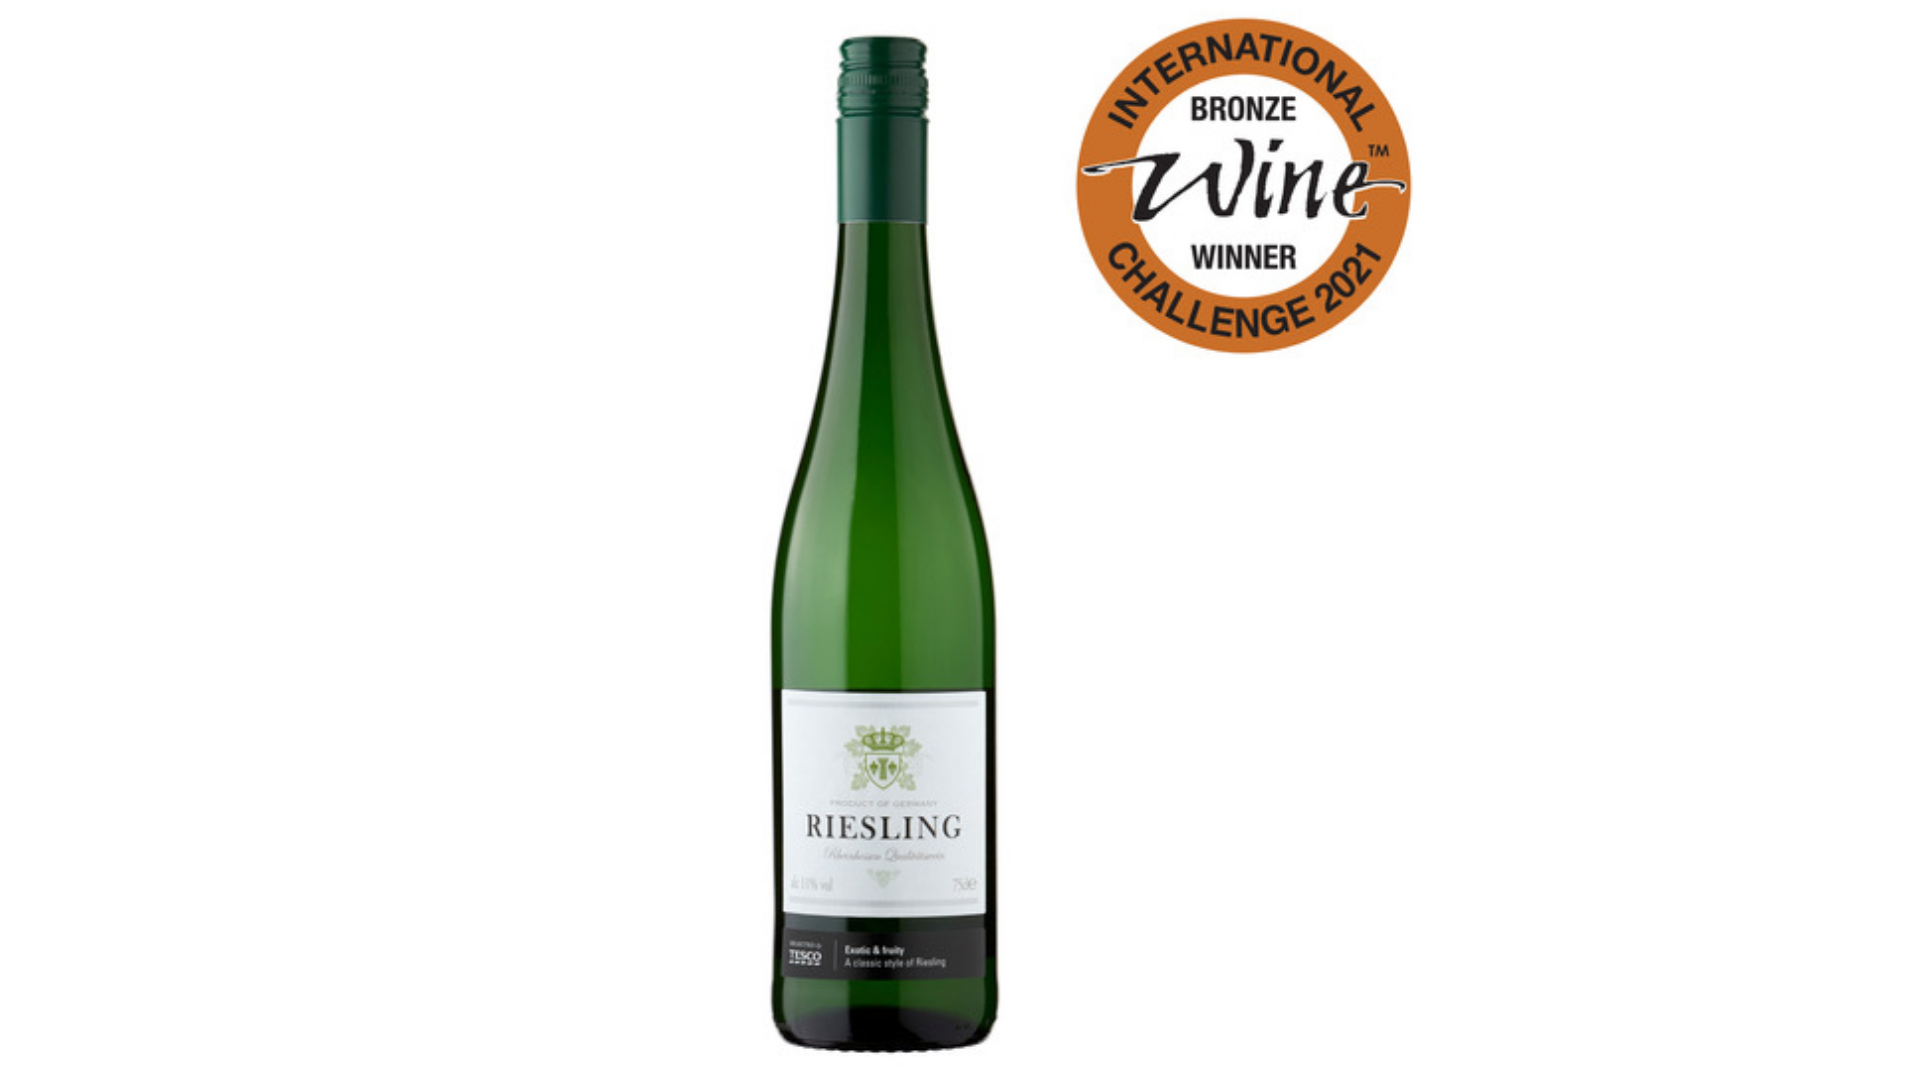 Riesling allemand Tesco